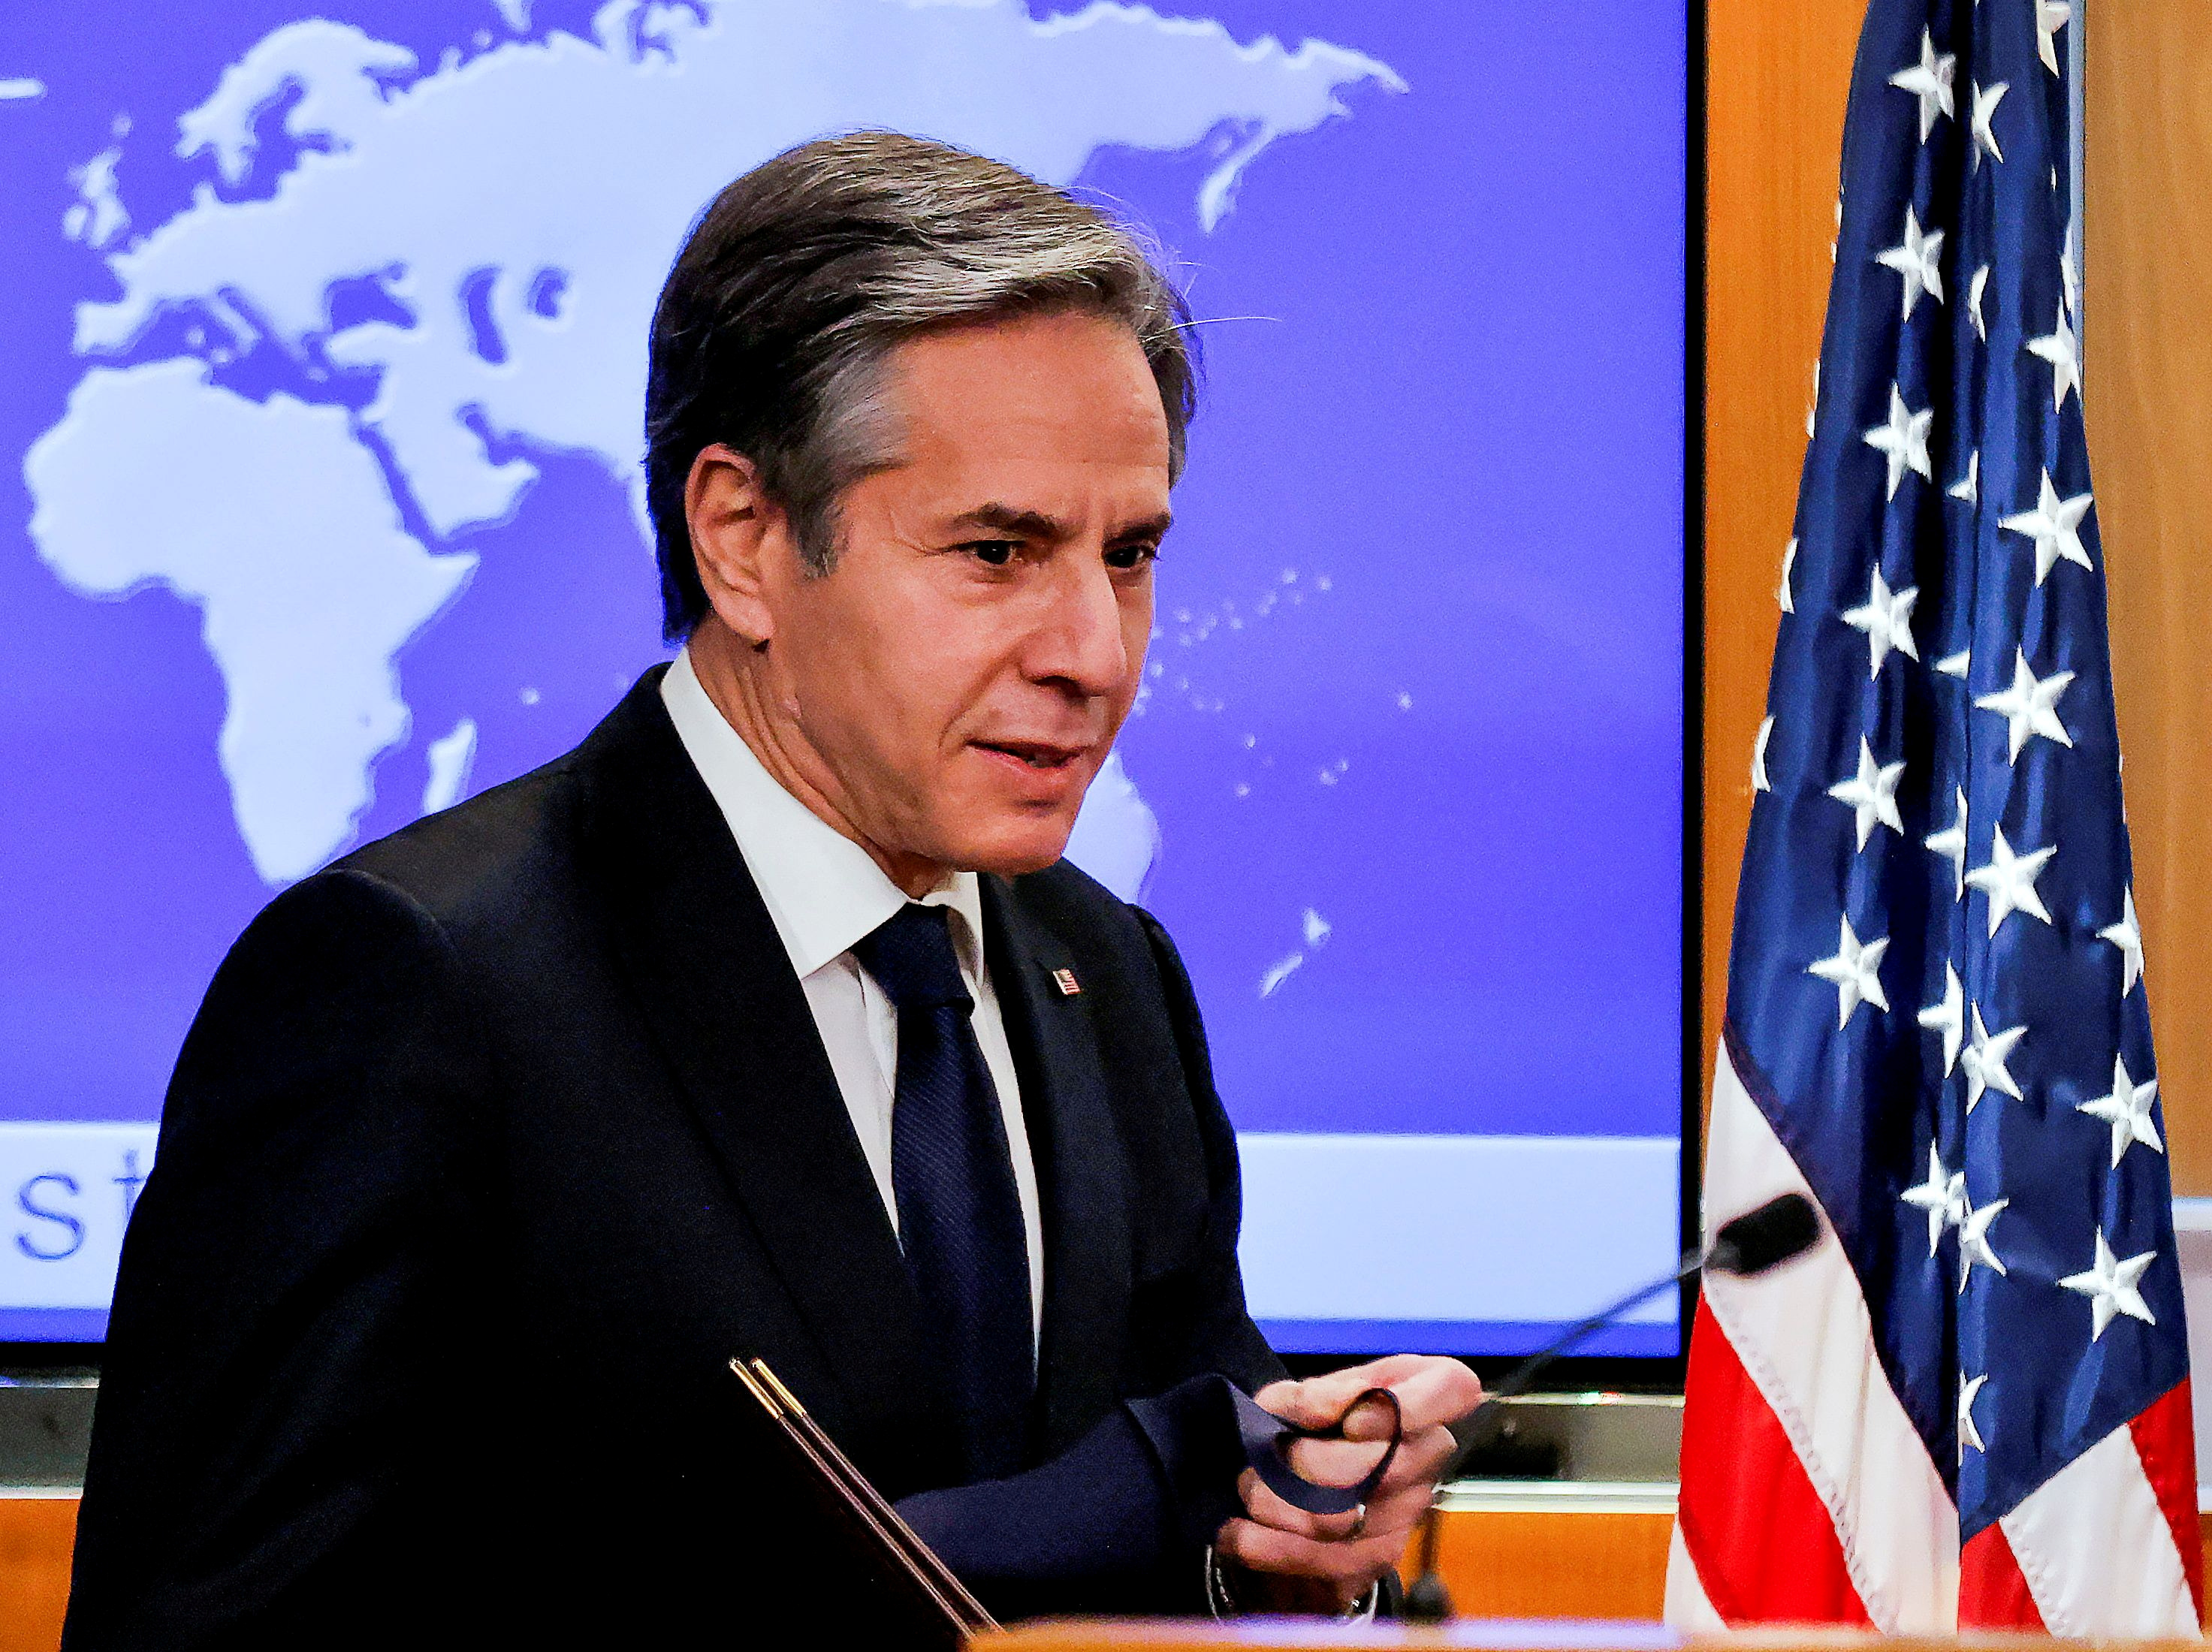 U.S. Secretary of State Antony Blinken begins his first press briefing at the State Department in Washington, U.S., January 27, 2021. REUTERS/Carlos Barria/Pool/File Photo